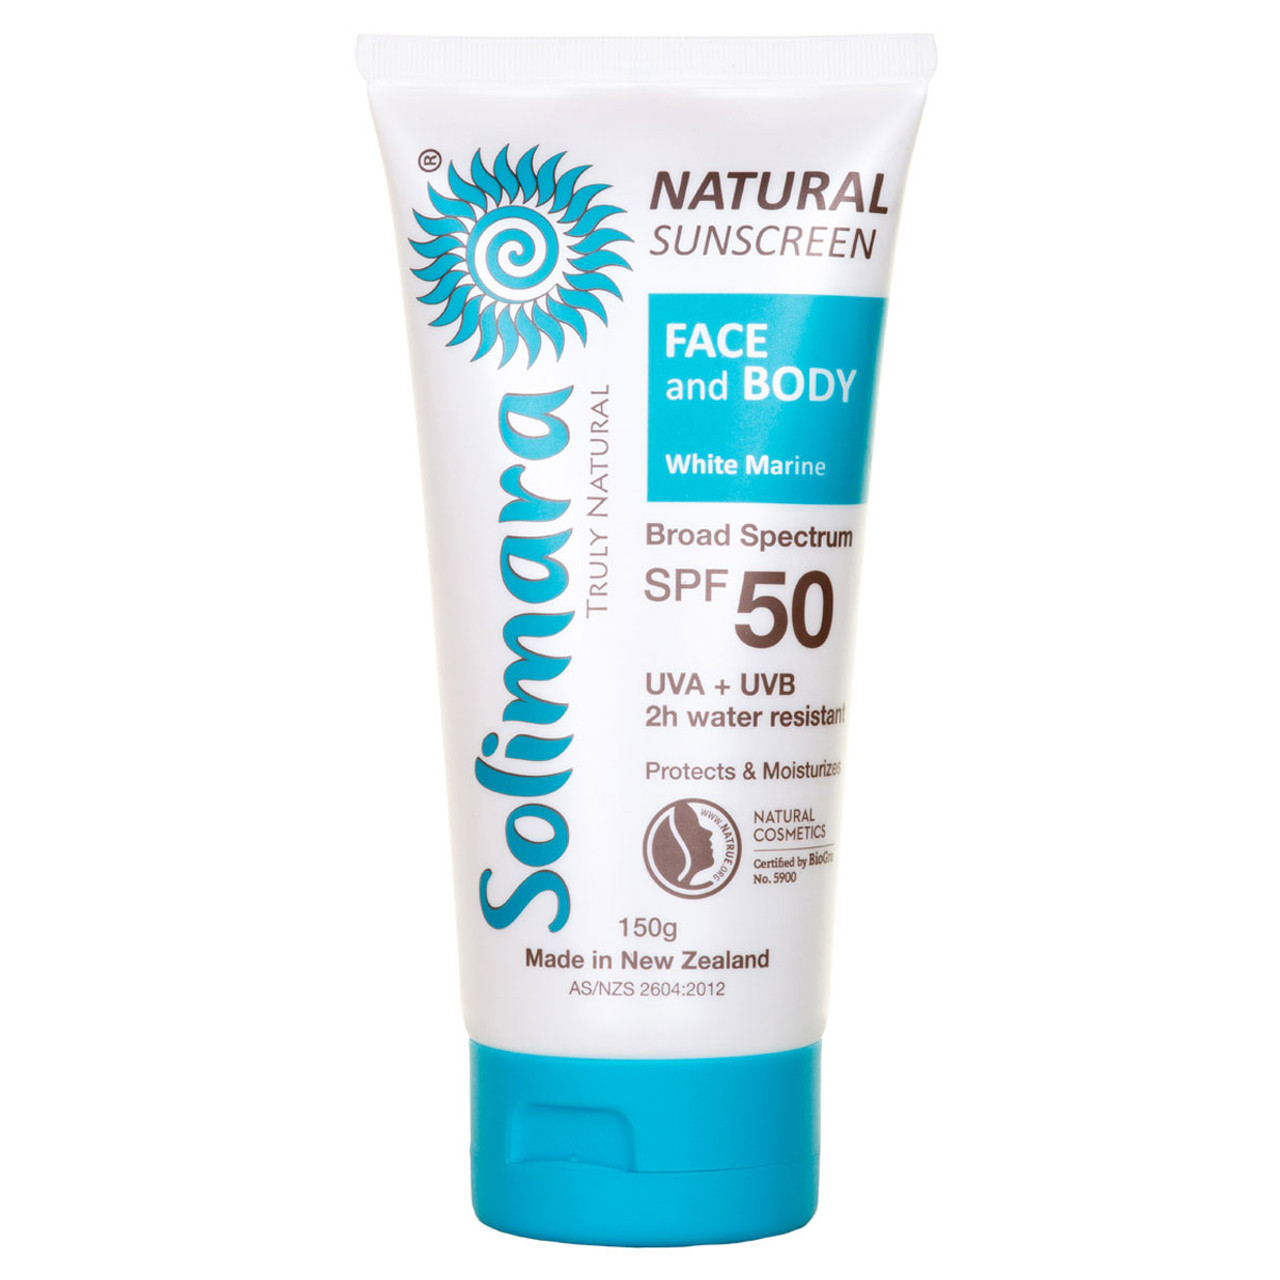 Solimara Truly Natural Natural Sunscreen Face & Body SPF 50 White Marine